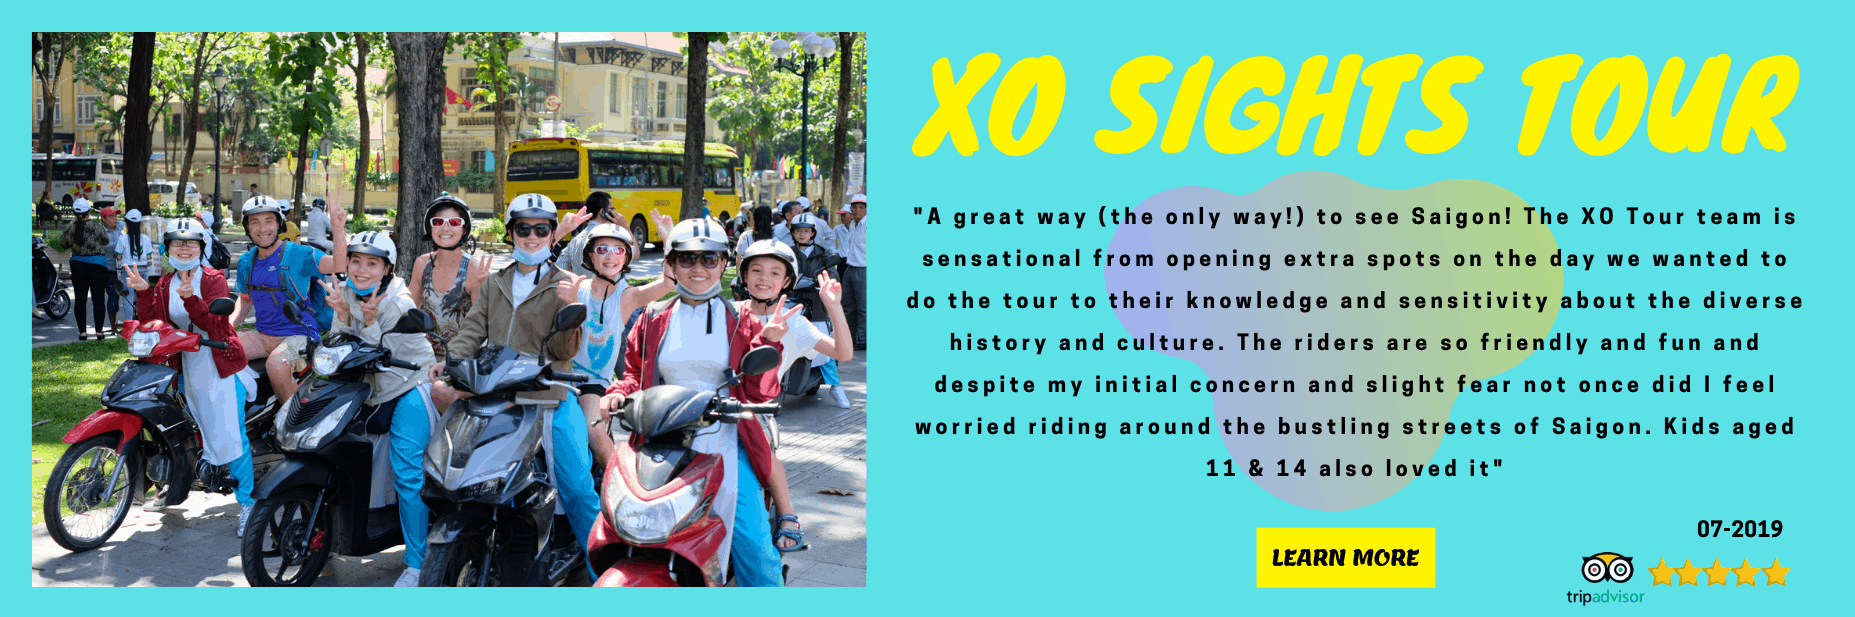 family of 4 on XO scooter tour